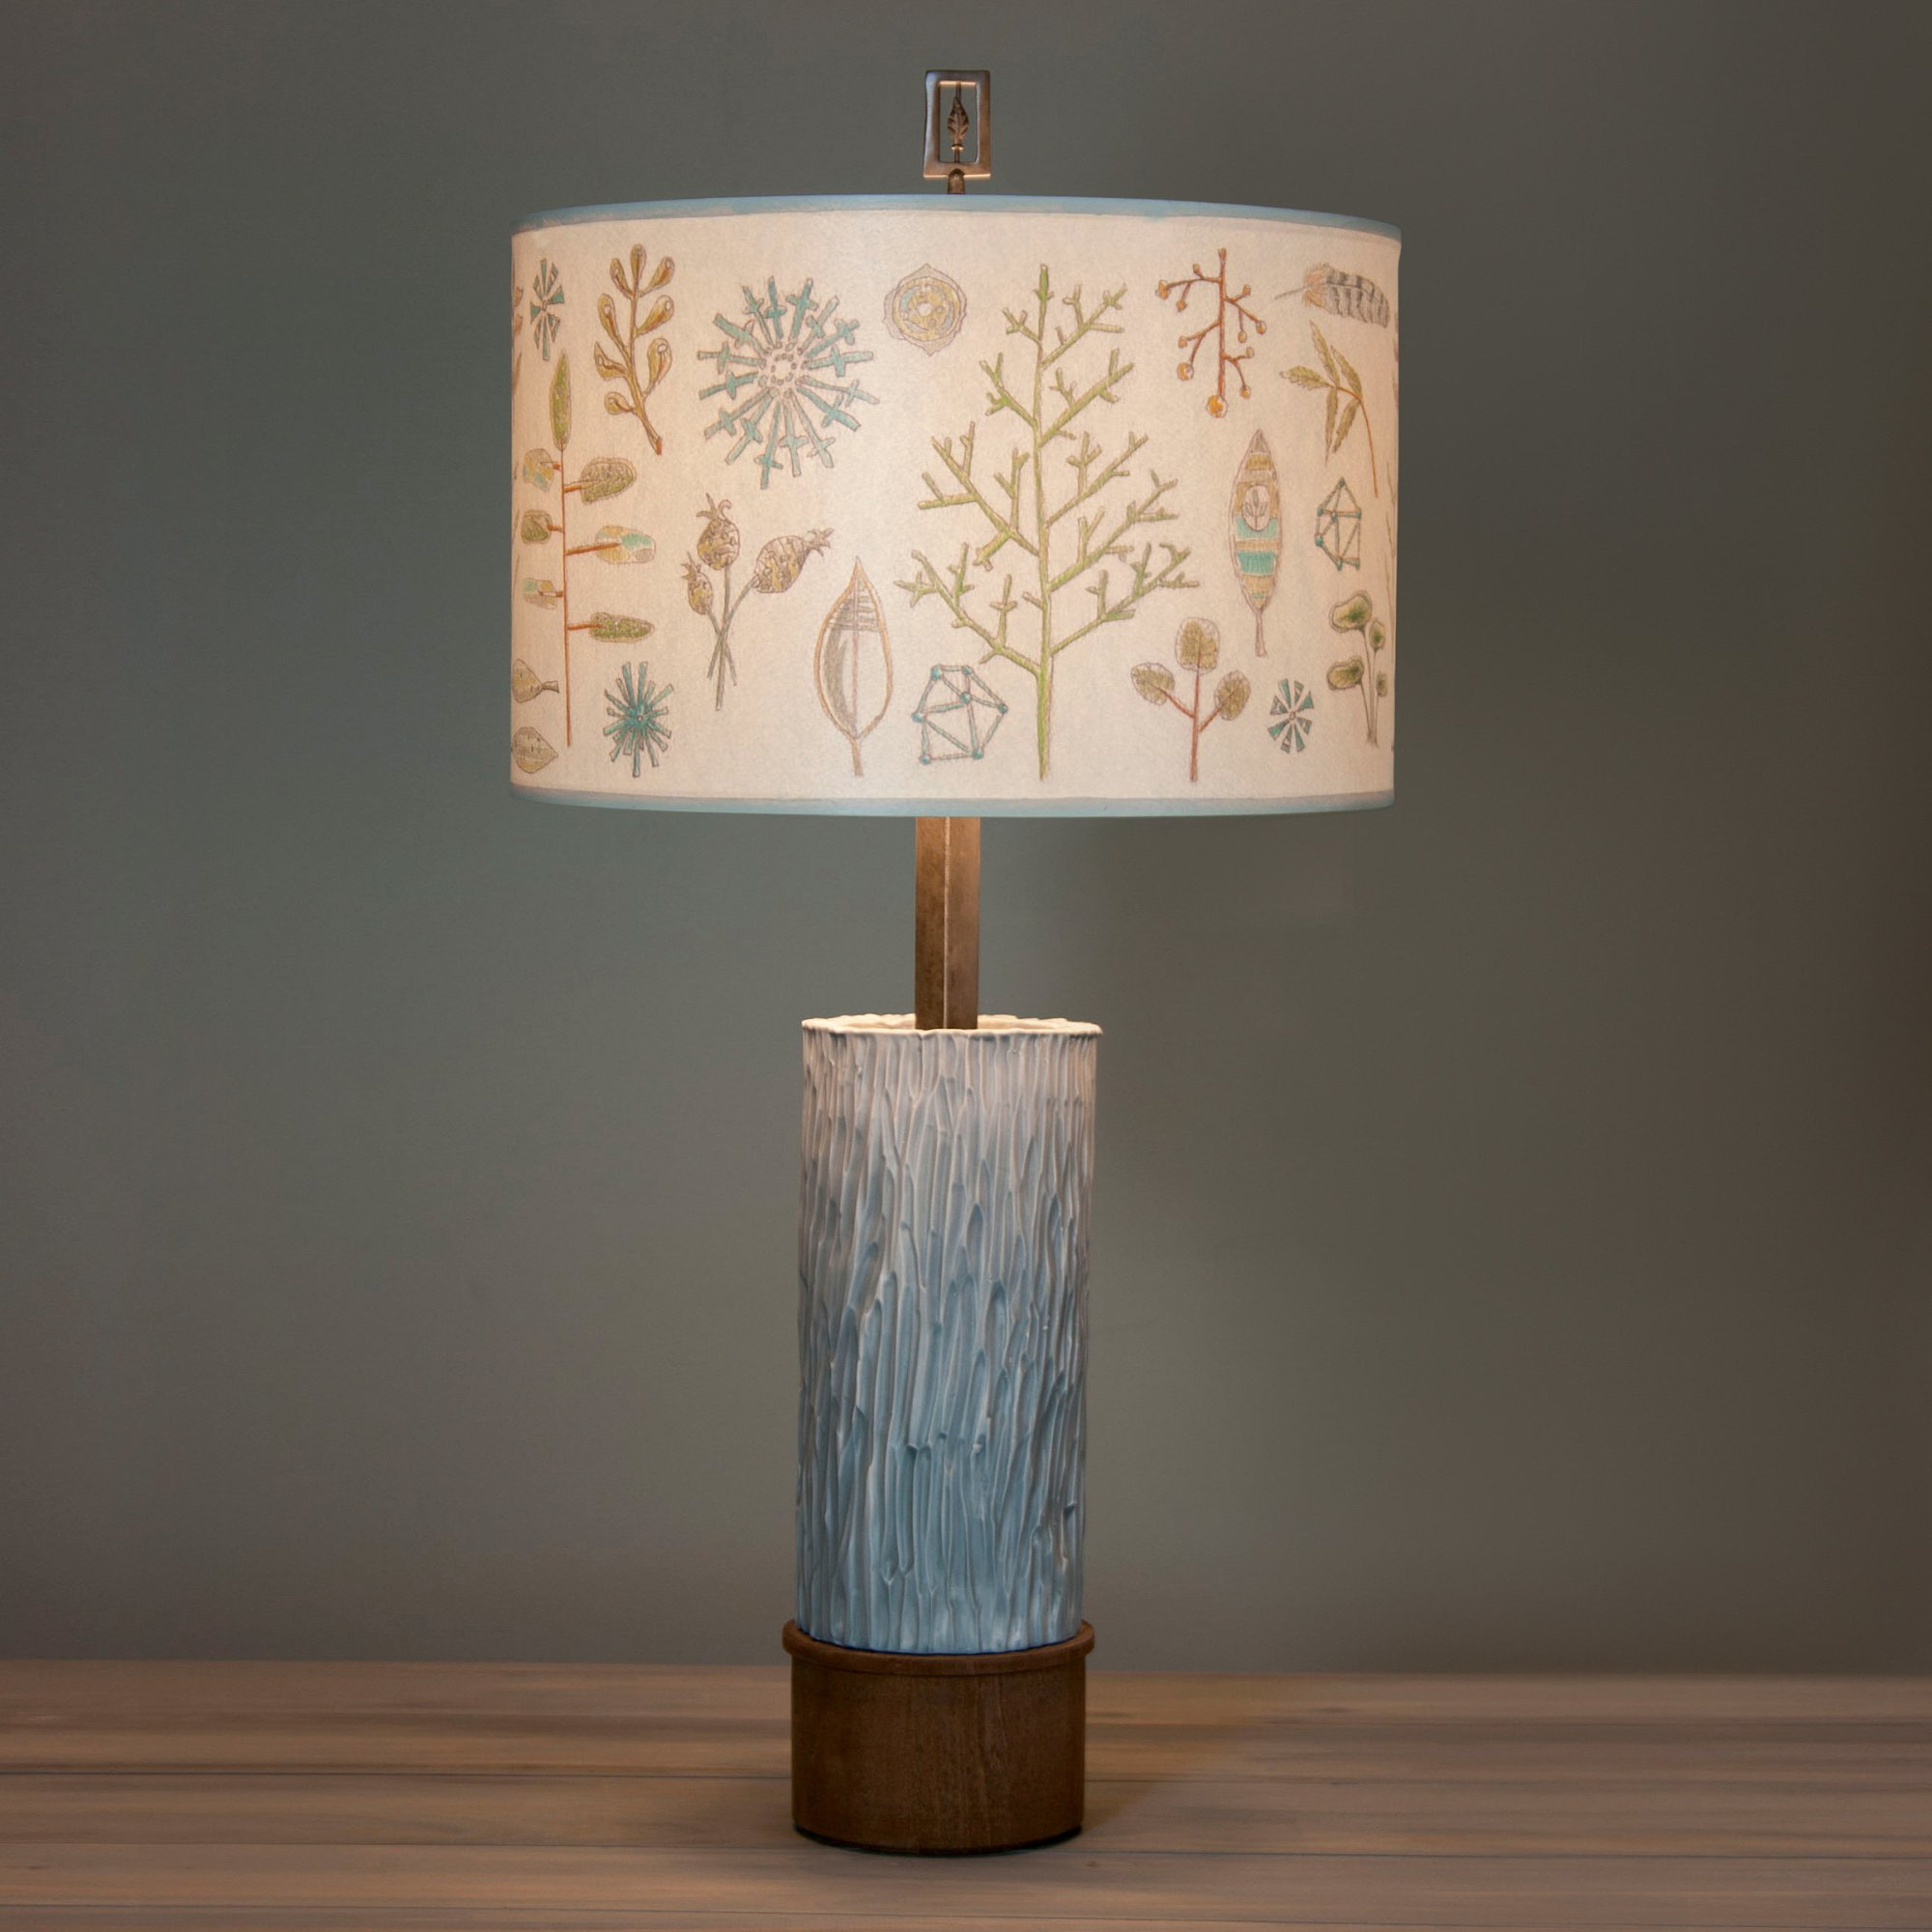 hight resolution of ceramic and wood table lamp with large drum shade in field chart